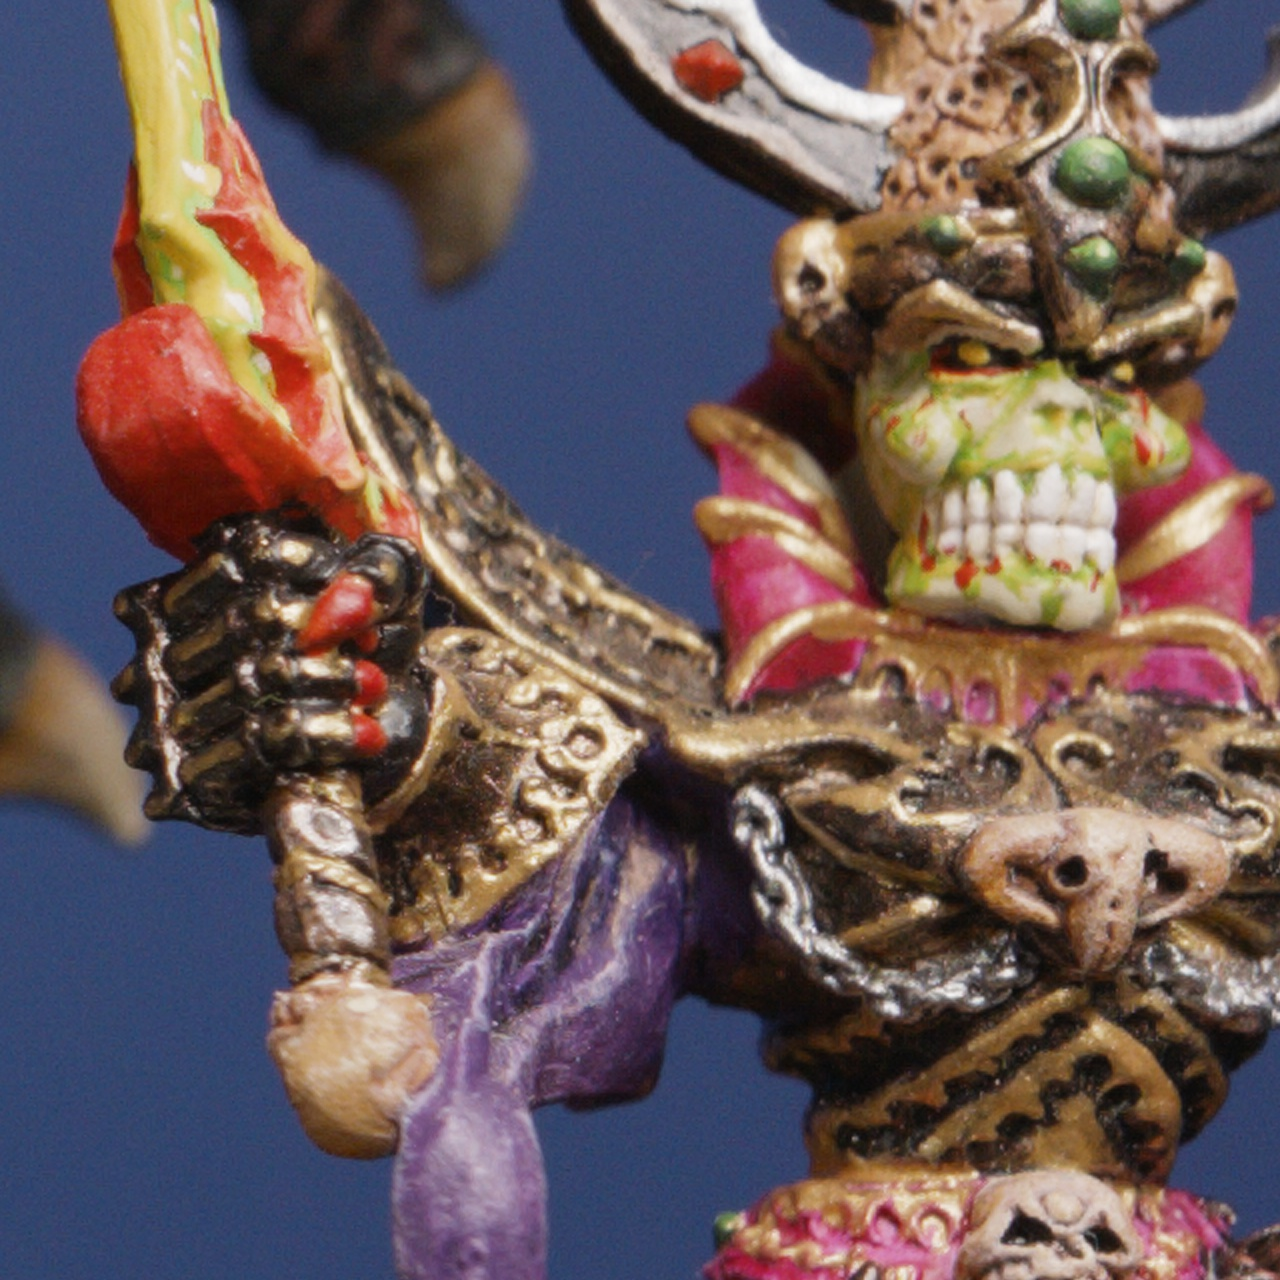 Minatures_Detail1_DNG.jpg